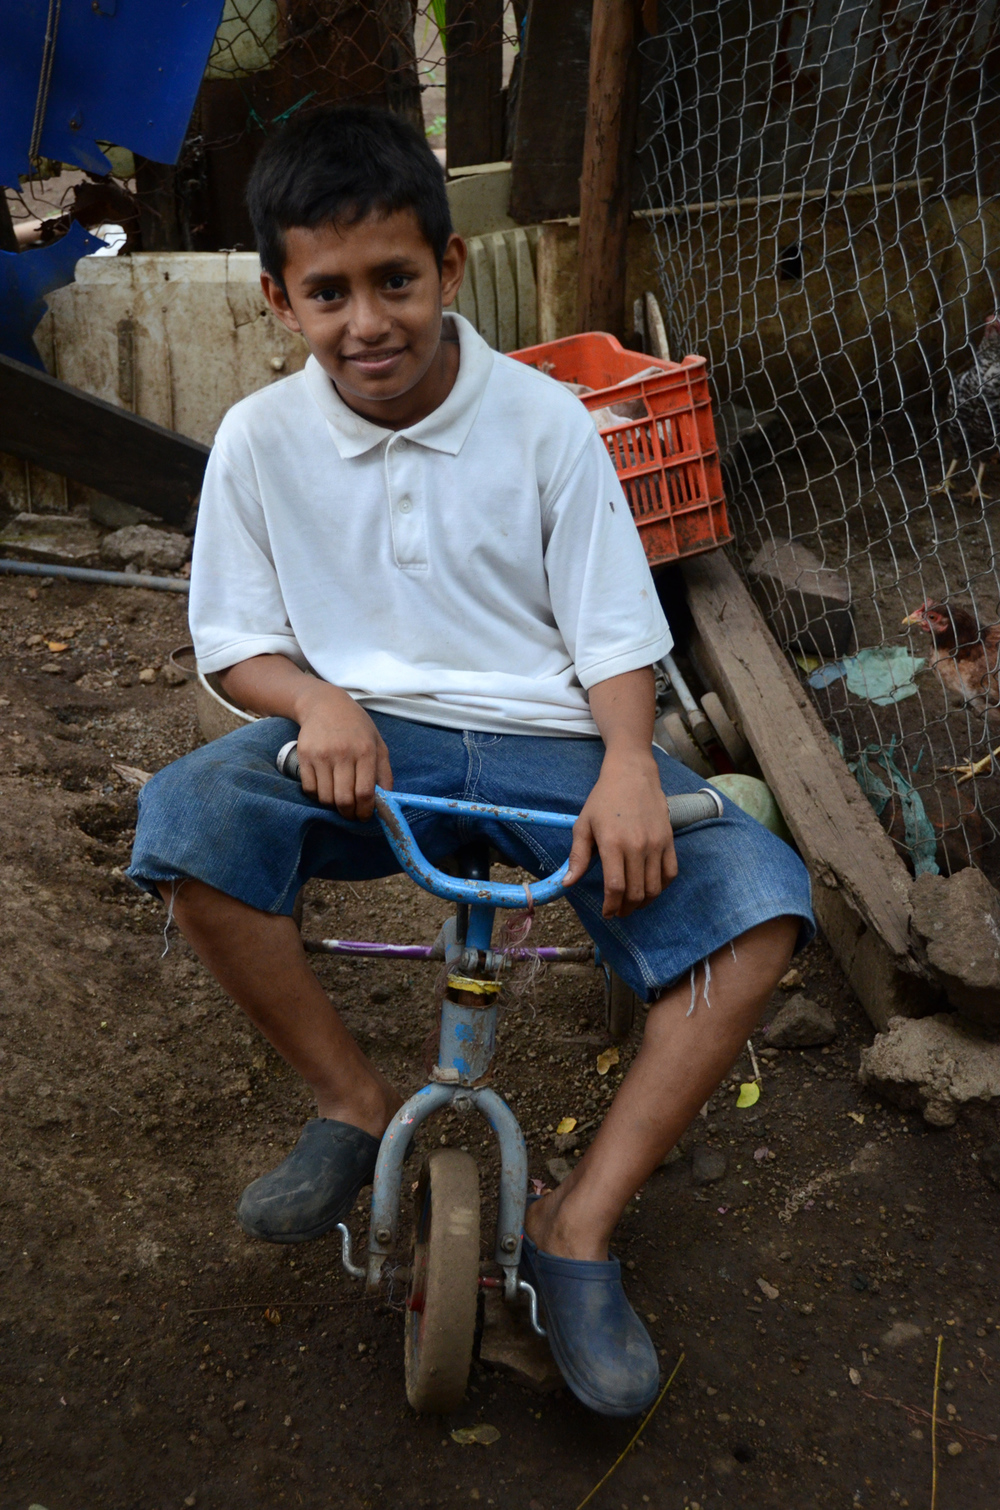 Edwin riding his deceased brother Yader's tricycle outside his house in Managua (2012). Photo by Elizabeth Kay.